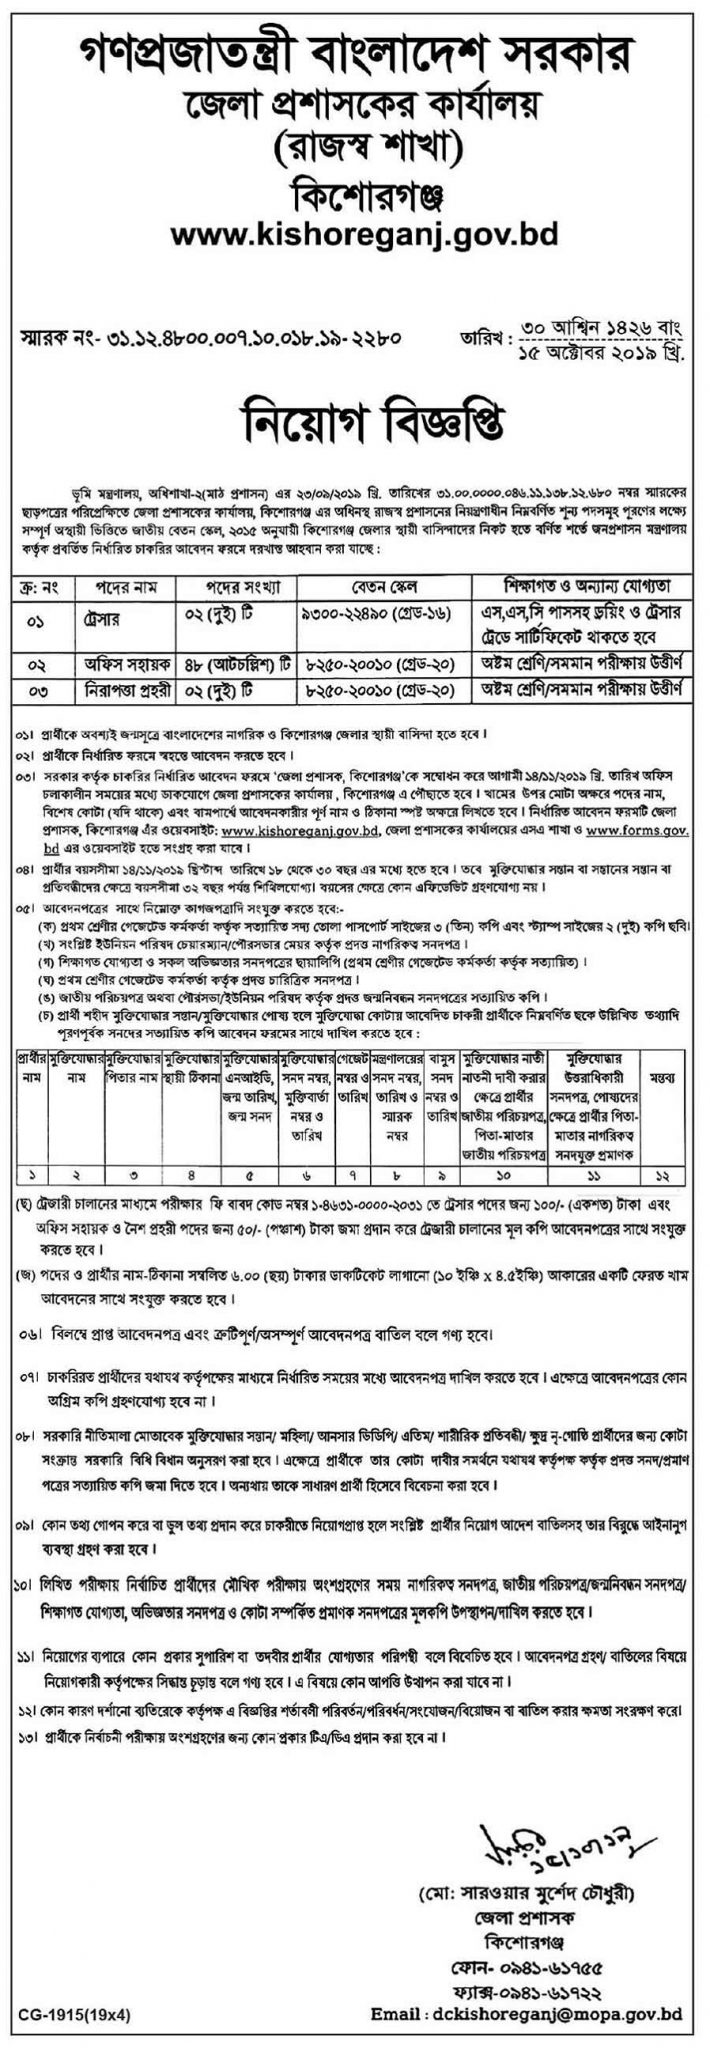 Kishorgonj Deputy Commissioner's Office Job Circular 2019